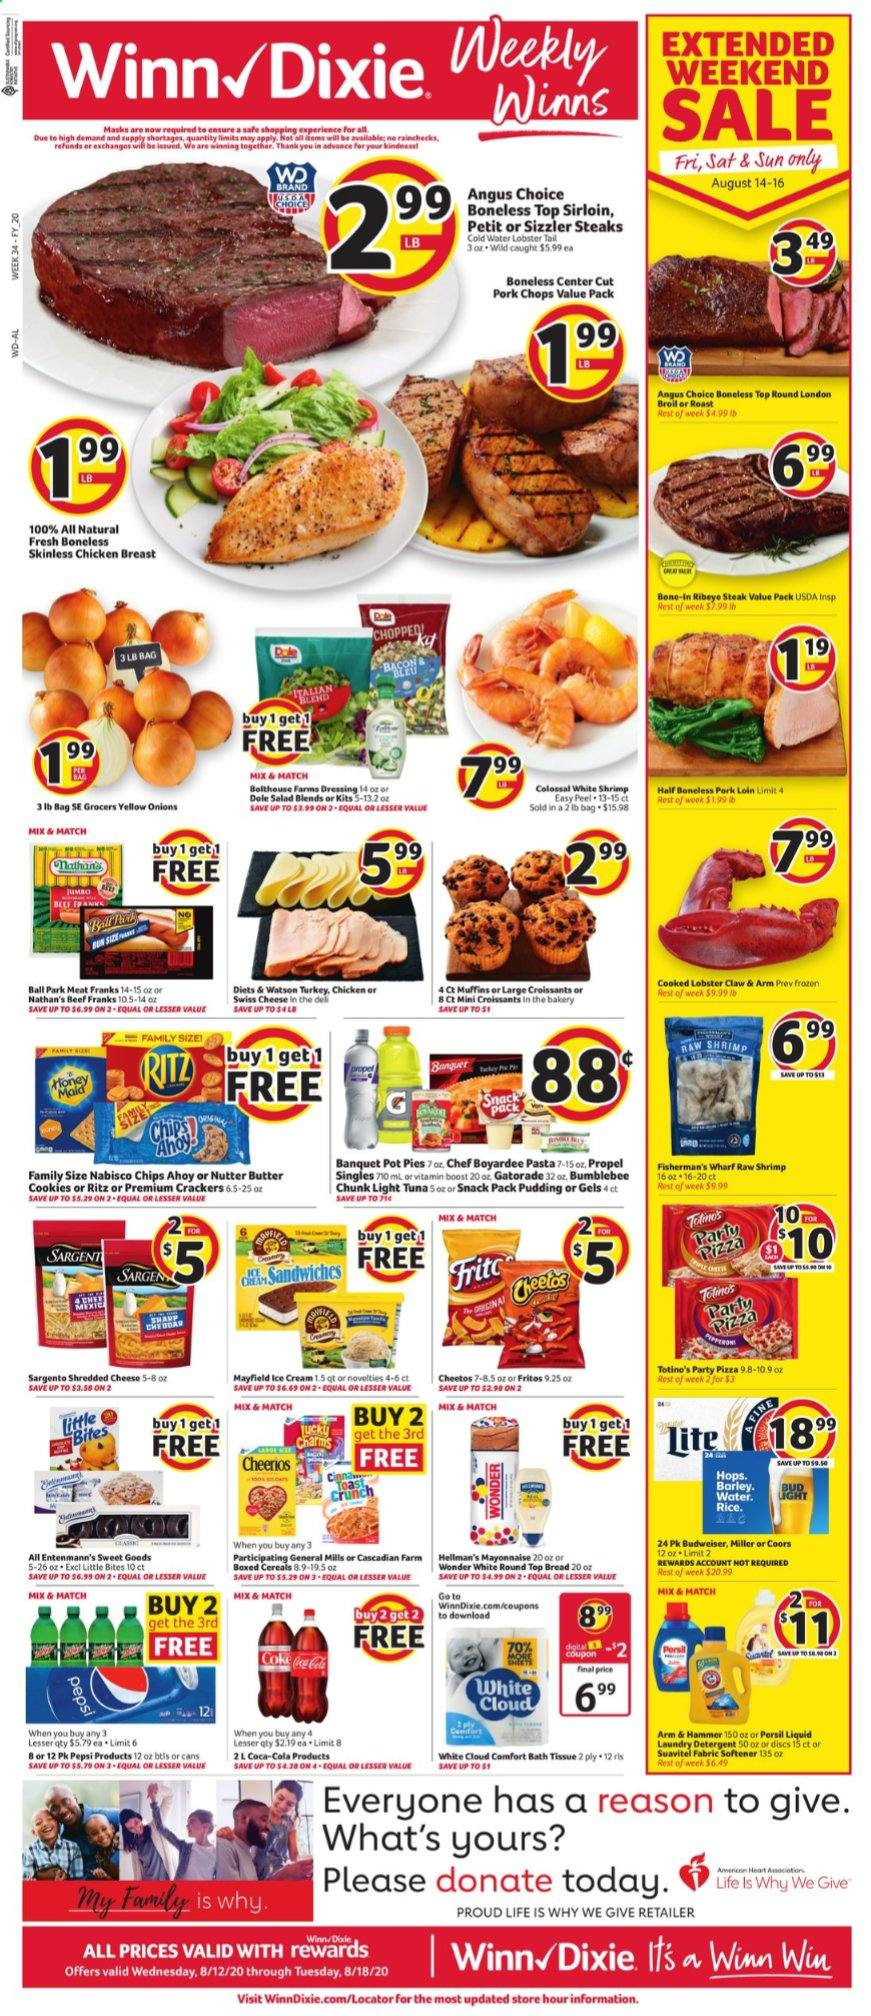 Winn Dixie Flyer - 08.12.2020 - 08.18.2020 - Sales products - arm & hammer, bacon, bag, barley, bath tissue, beef meat, bread, budweiser, cereals, coca-cola, cookies, crackers, croissants, detergent, fritos, lobster, mayonnaise, muffins, rice, safe, shredded cheese, shrimp, swiss cheese, tuna, turkey, yellow onions, honey, ice cream, pizza, pork chops, pork loin, pork meat, pot, pot pies, pudding, cheerios, cheetos, chicken, chicken breast, pepsi, persil, onion, chips, steak, cheese, butter cookies, dressing, snack, hammer, softener, pasta, light tuna, bud light, ritz, salad, ball, bites, miller, coors, dole, liquid, meat, laundry detergent, lobster tail, roast, shrimps, onions. Page 1.